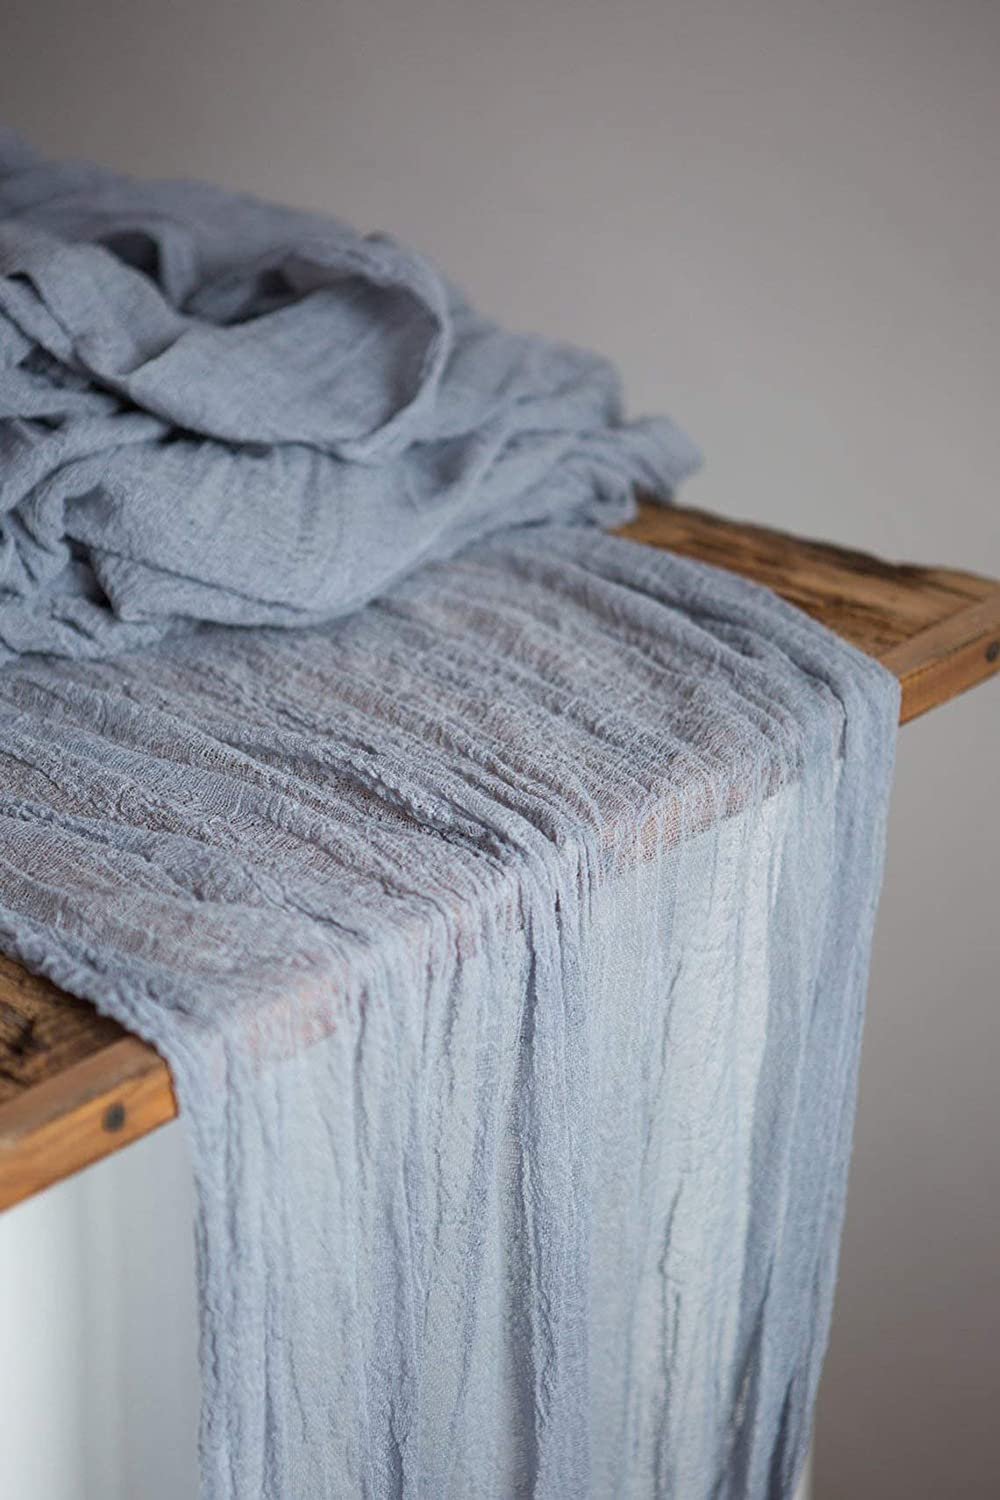 Dusty blue rustic wedding gauze cotton table runner 27 x 52ft Cheesecloth boho party decoration rustic candle runner reception top table overlay sweetheart table decor